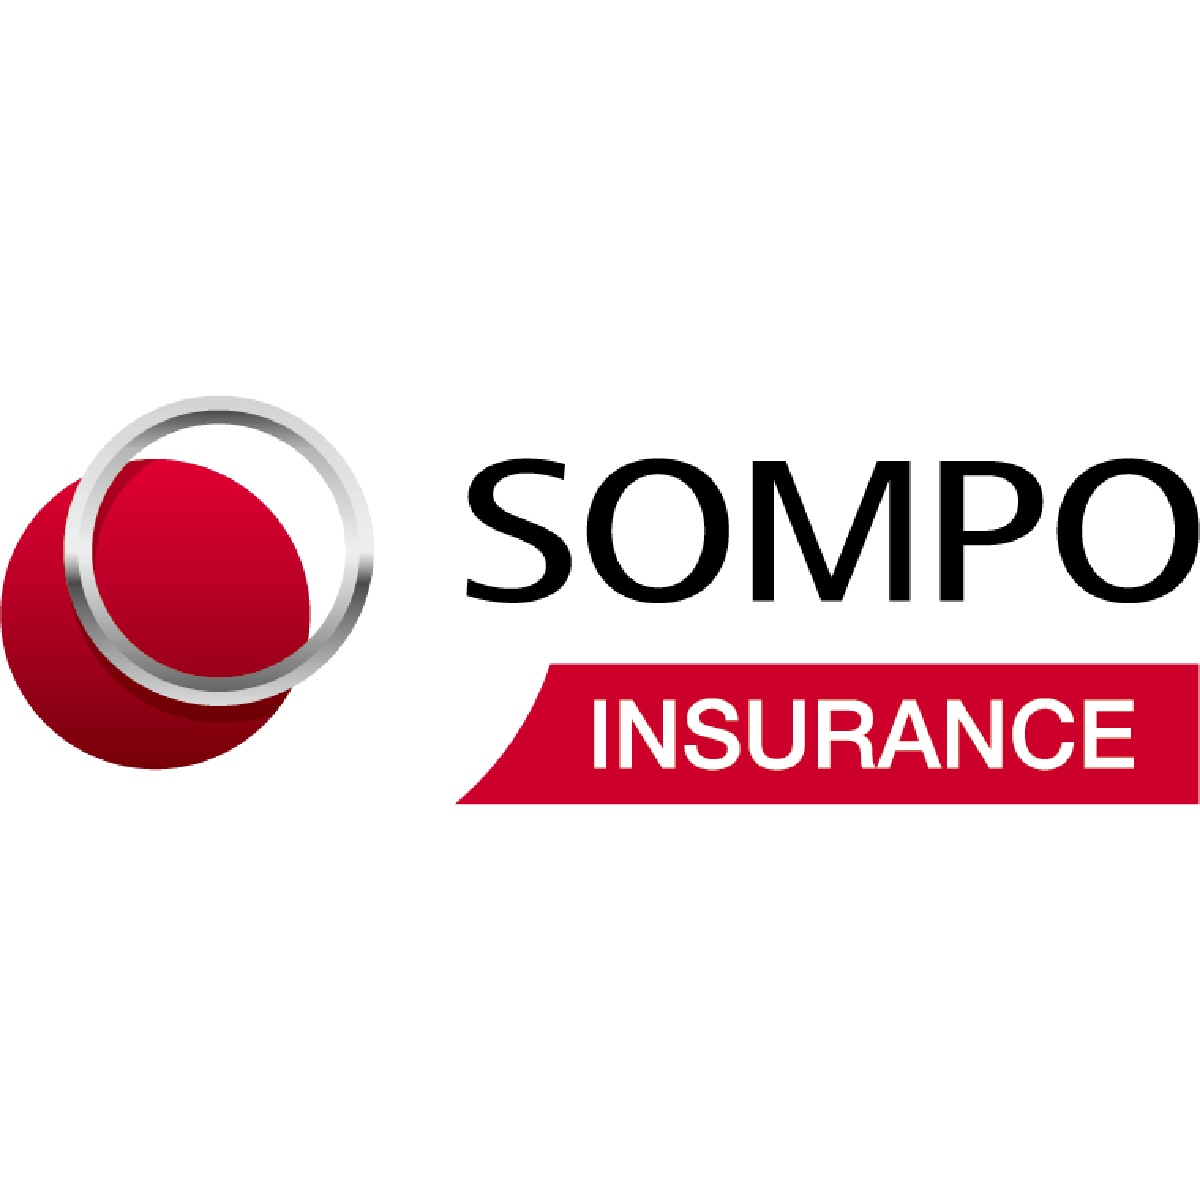 PT. Sompo Insurance Indonesia